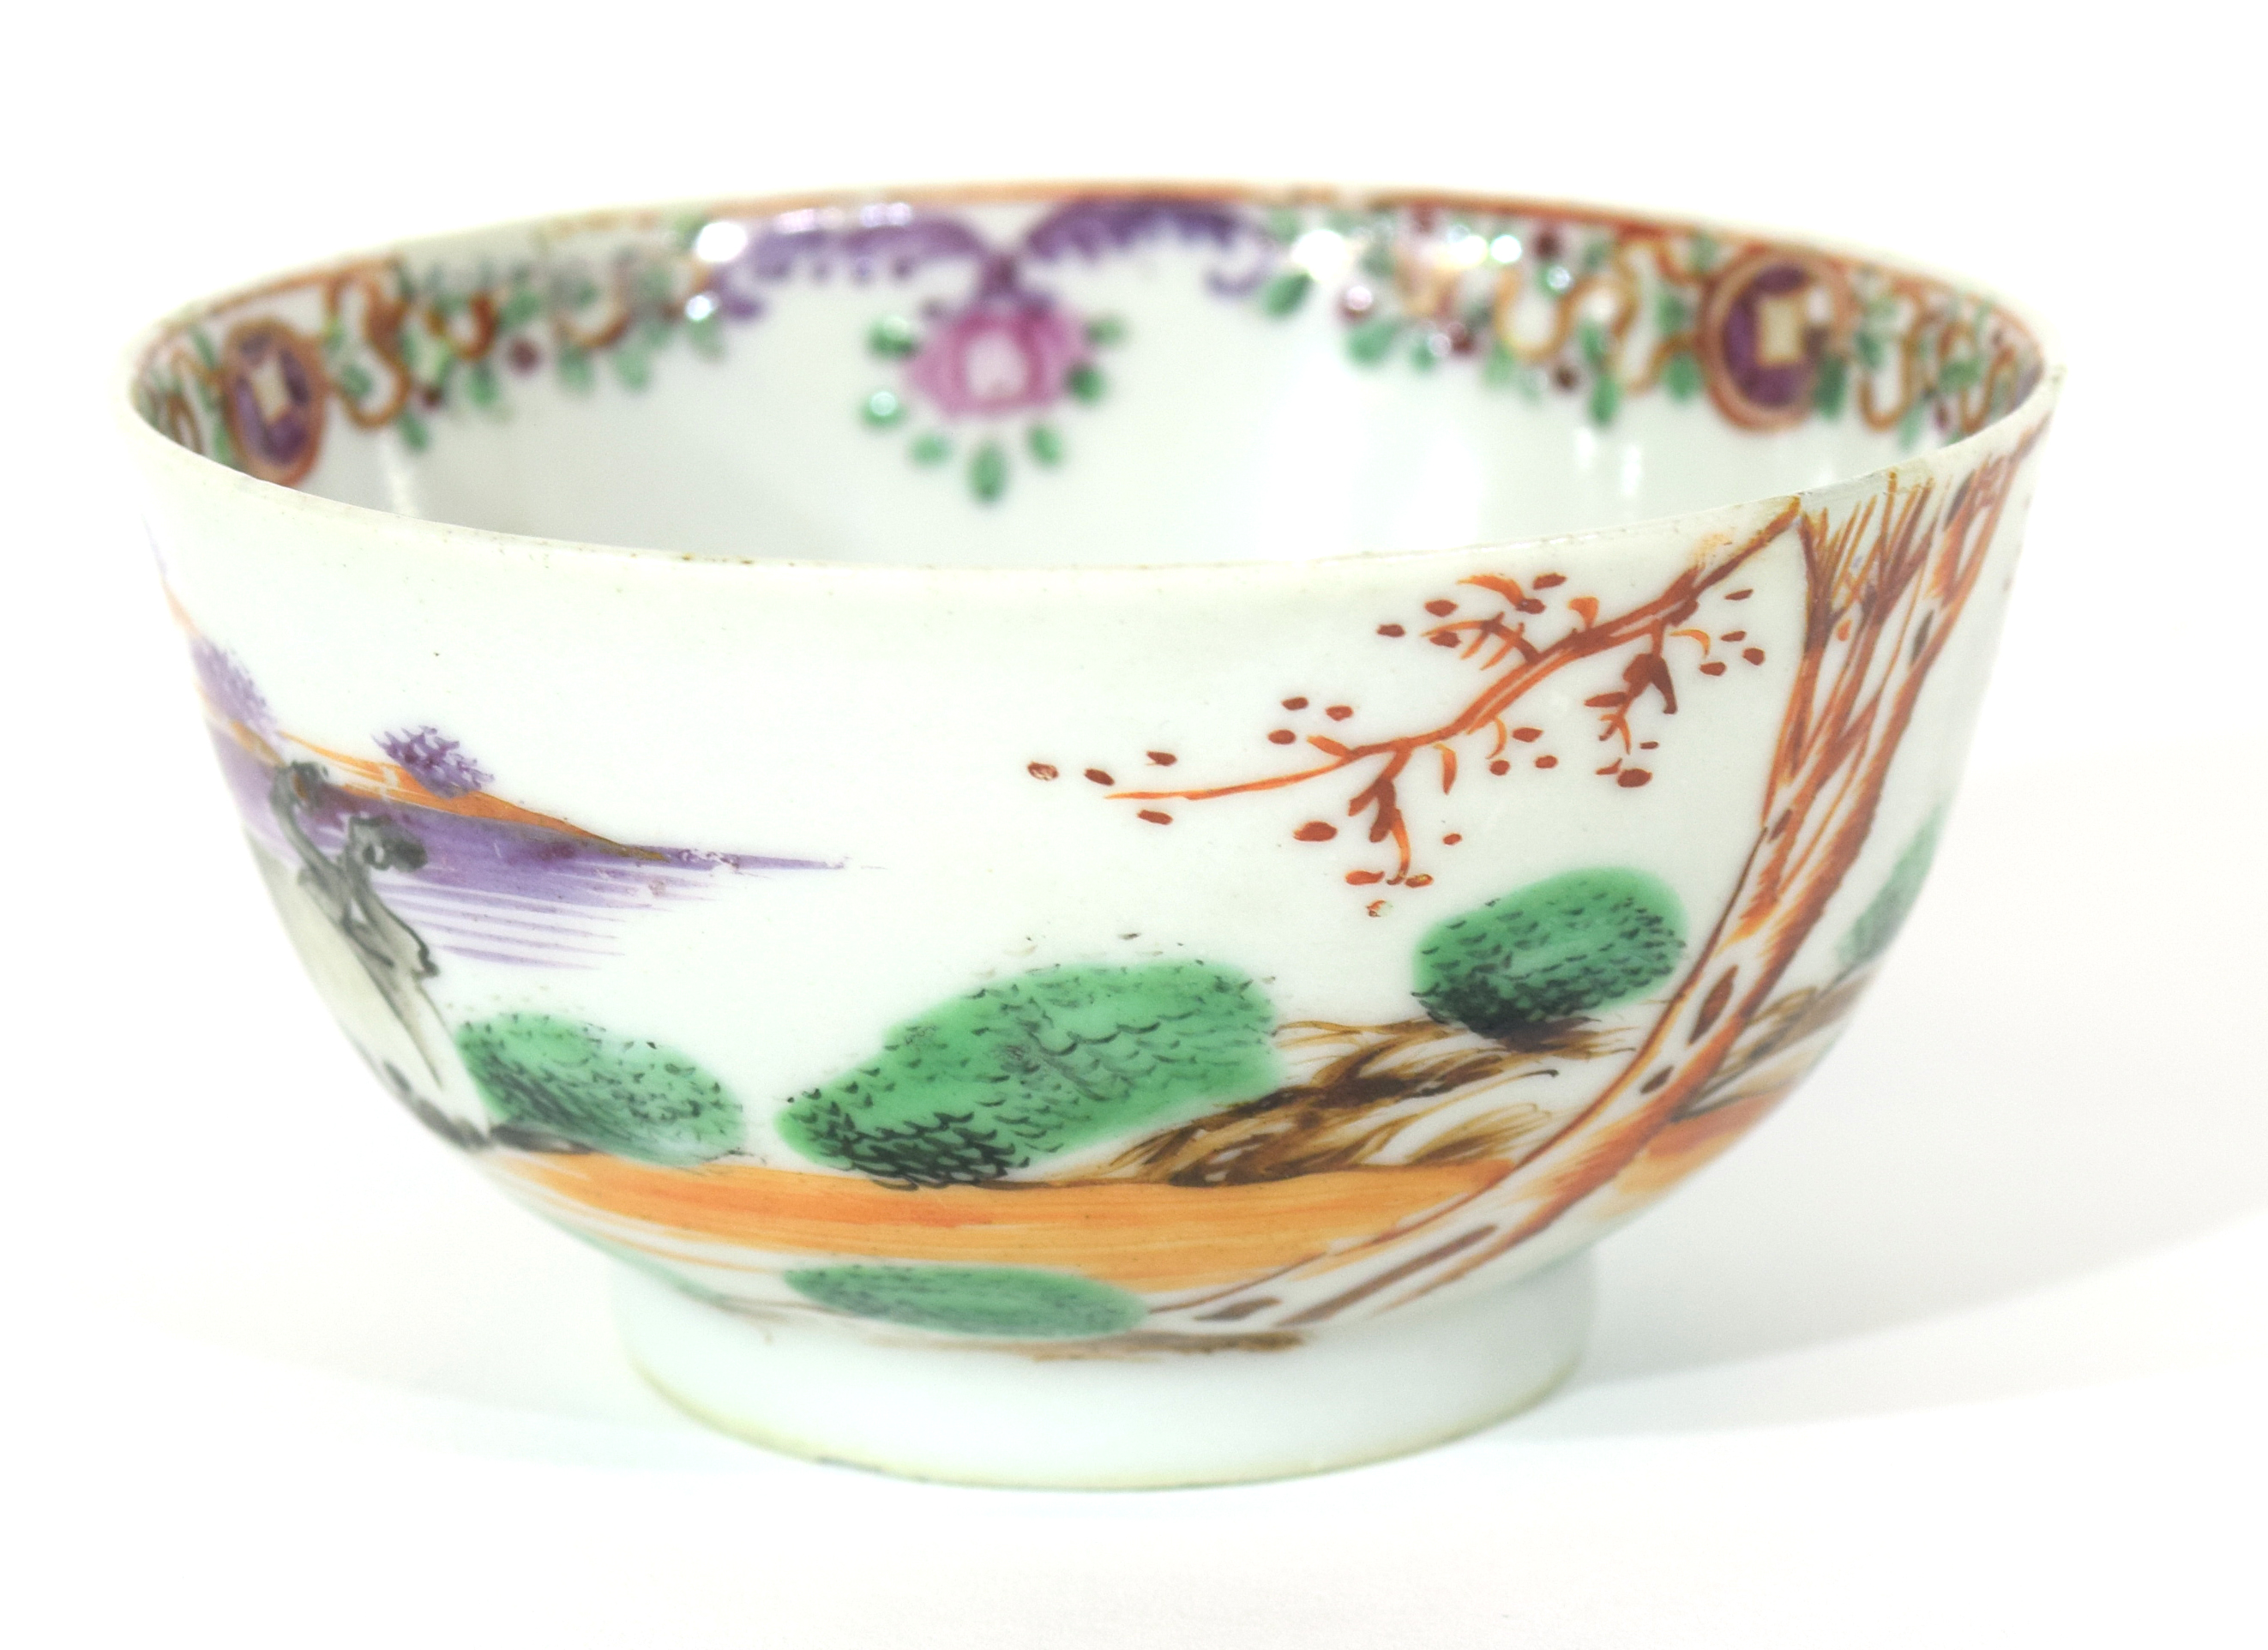 Small Chinese bowl, 18th century - Image 5 of 13